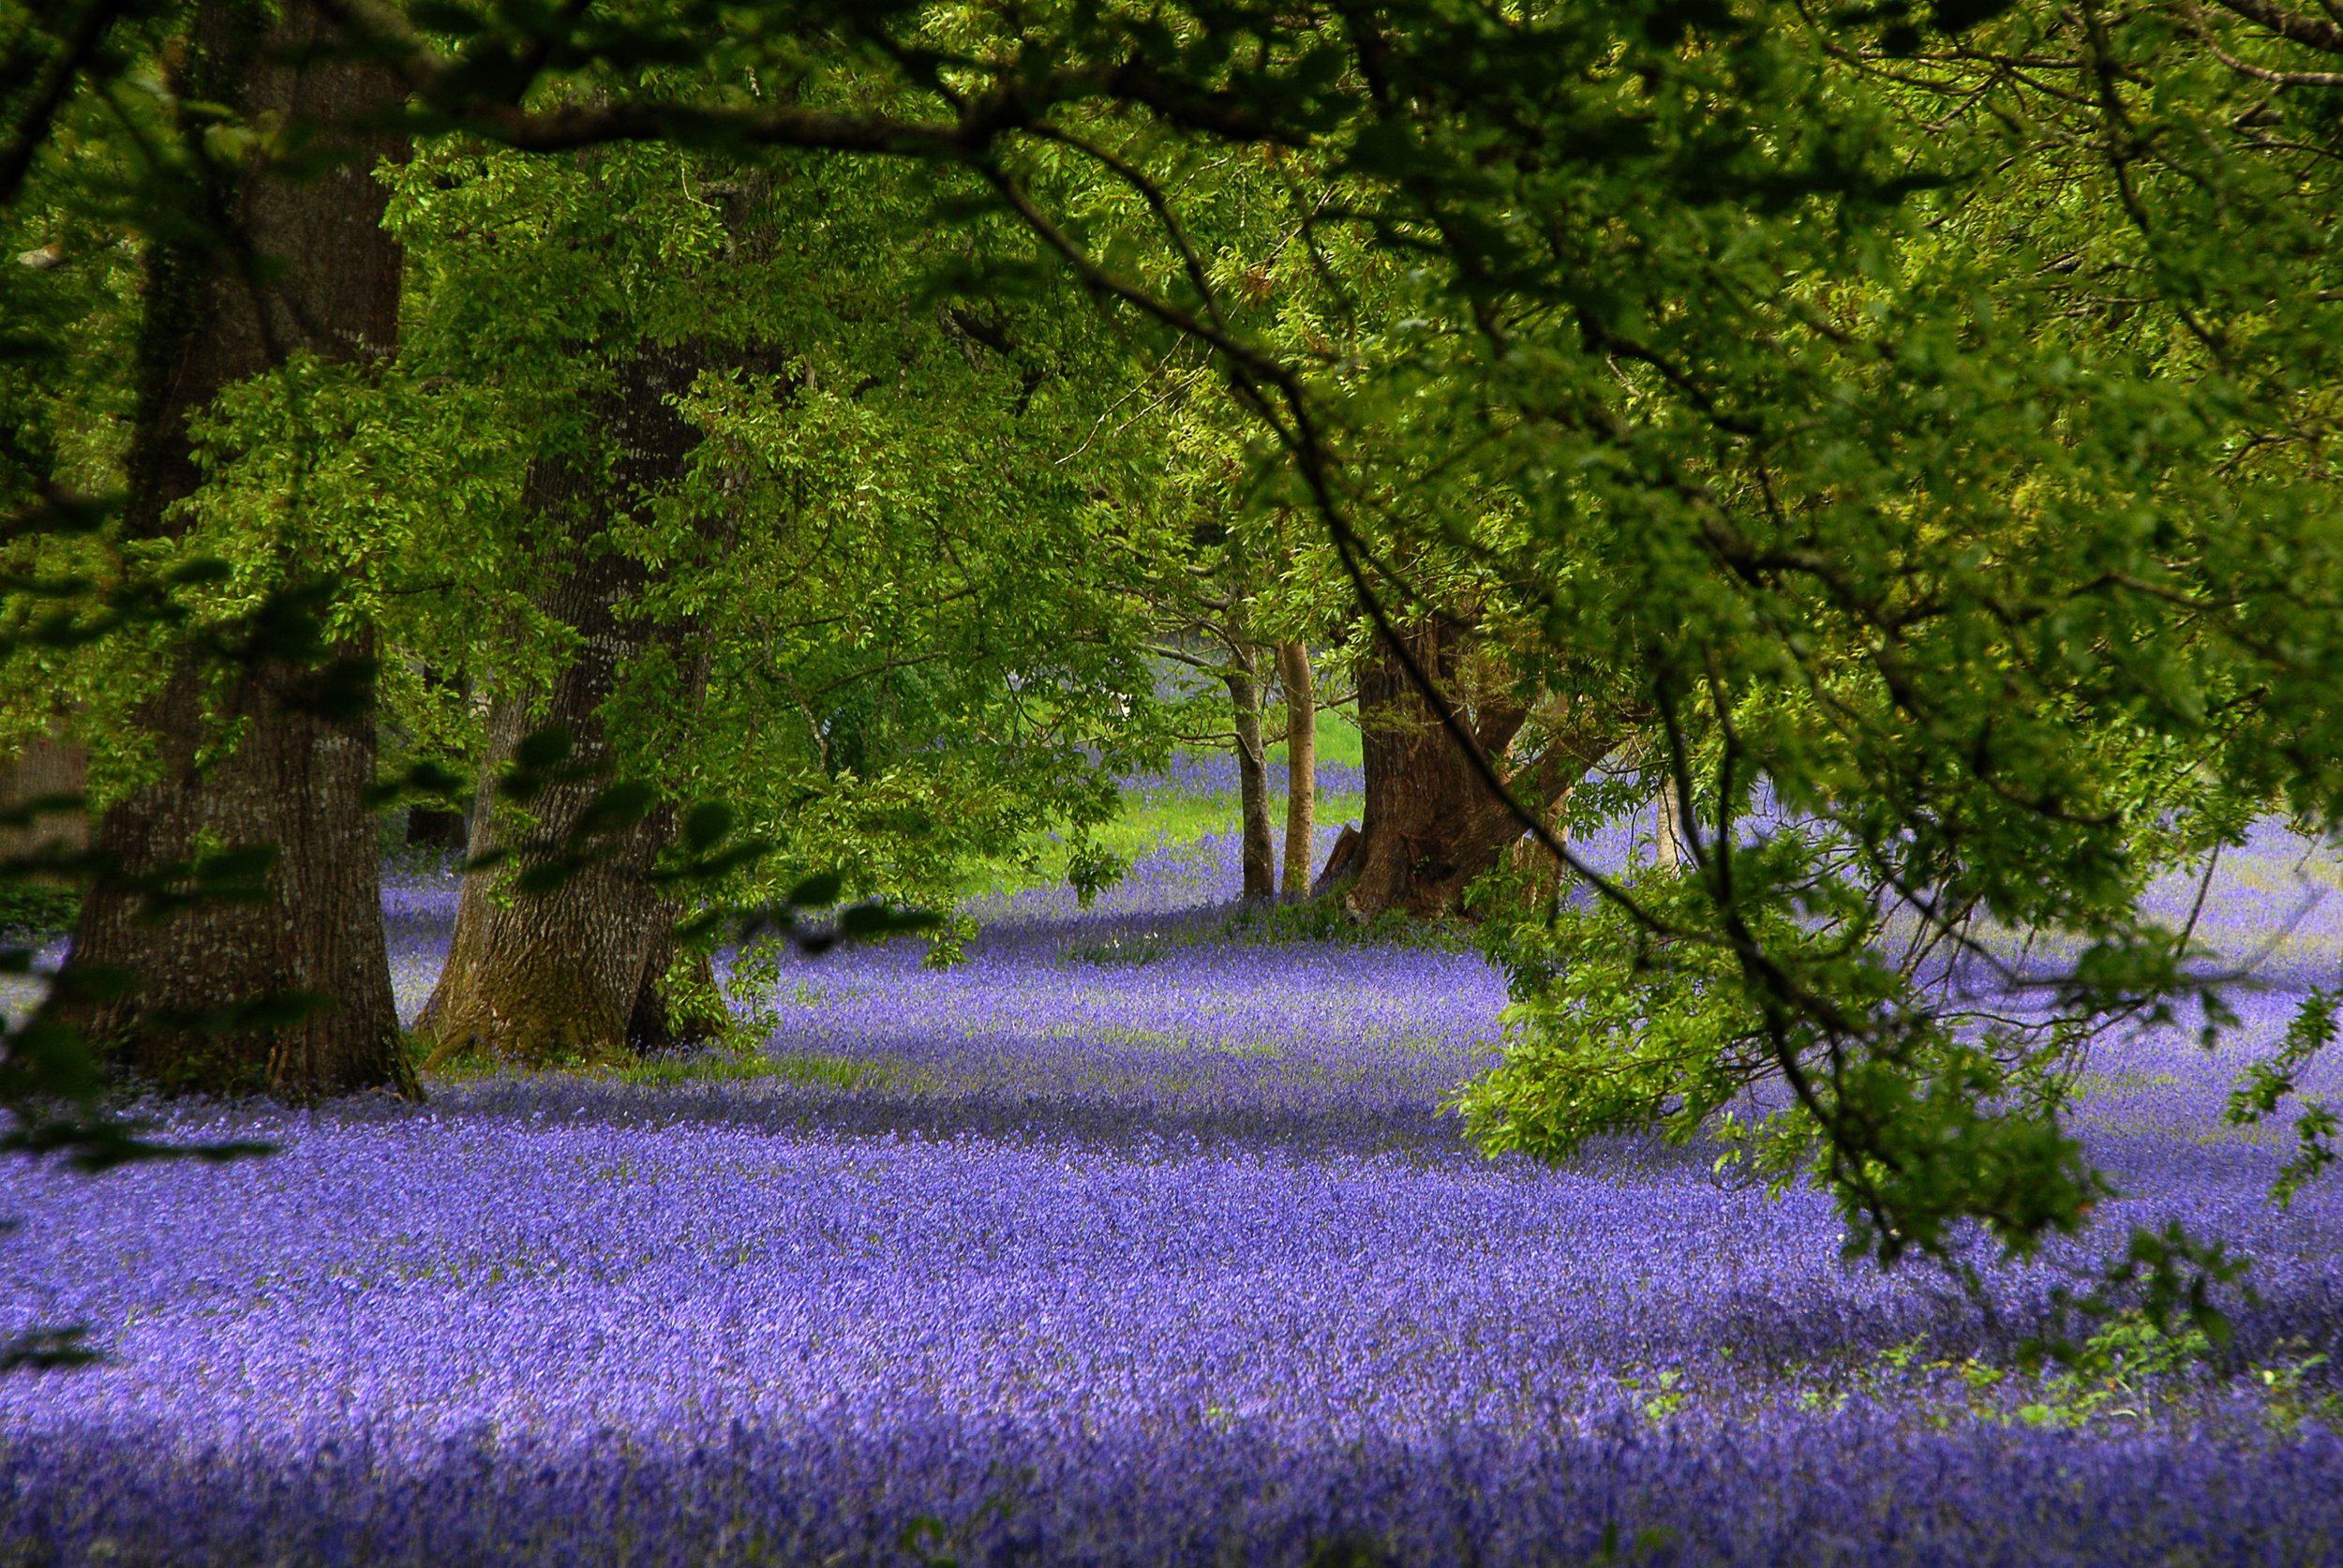 Reginald Poad - Ancient Bluebell Woods Enys Penryn